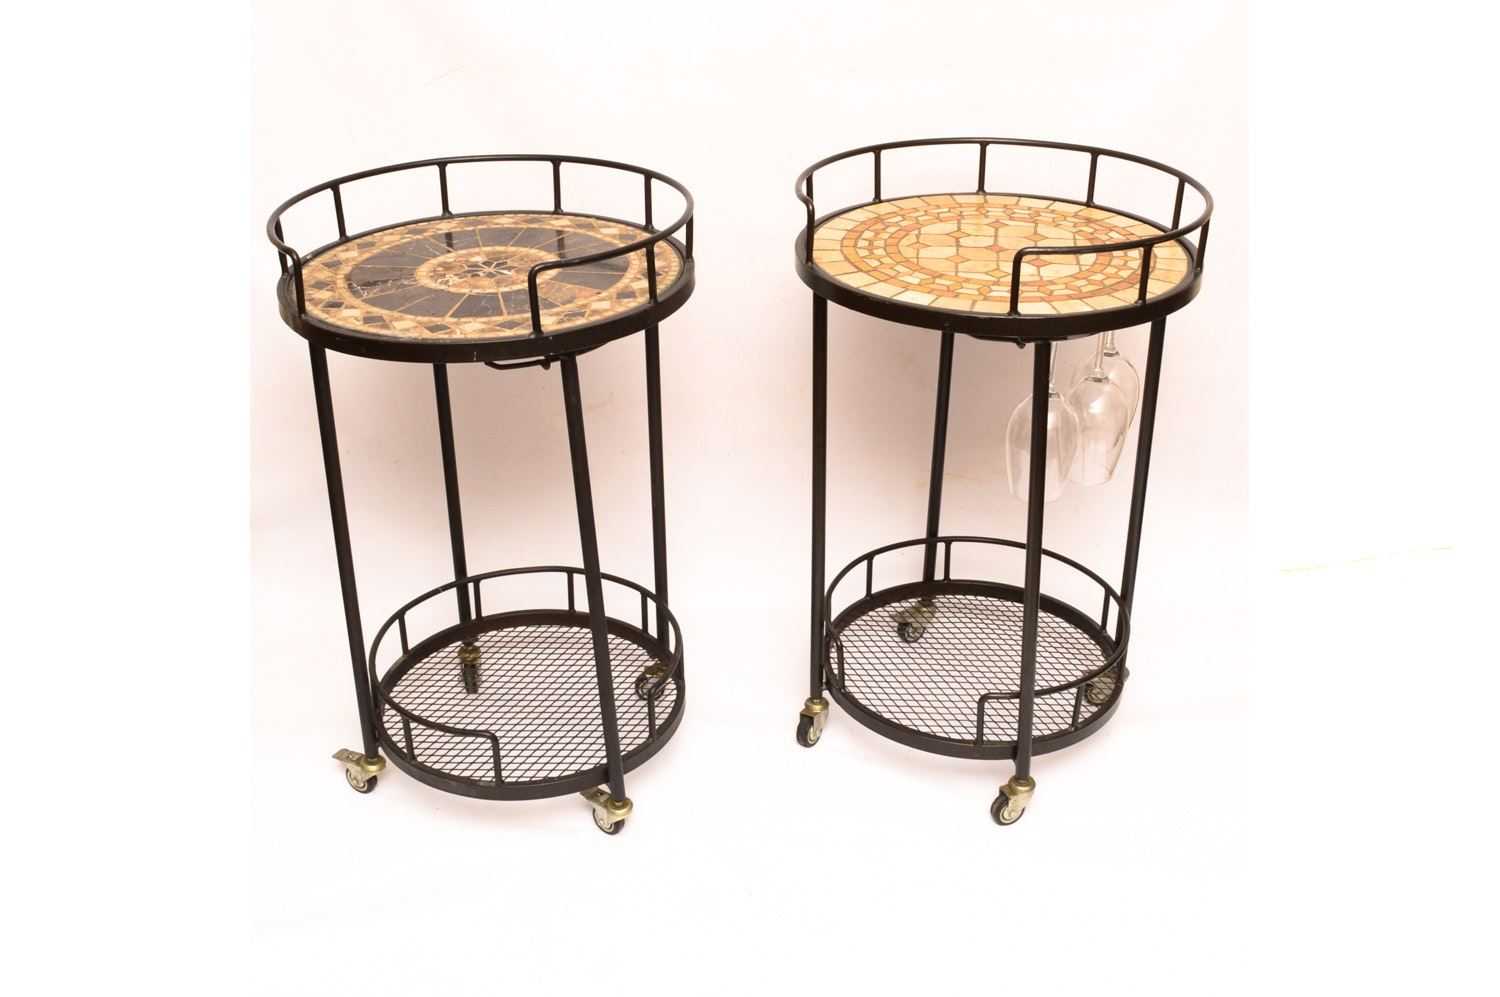 Mosaic Top Outdoor Serving Carts by Alfresco Home